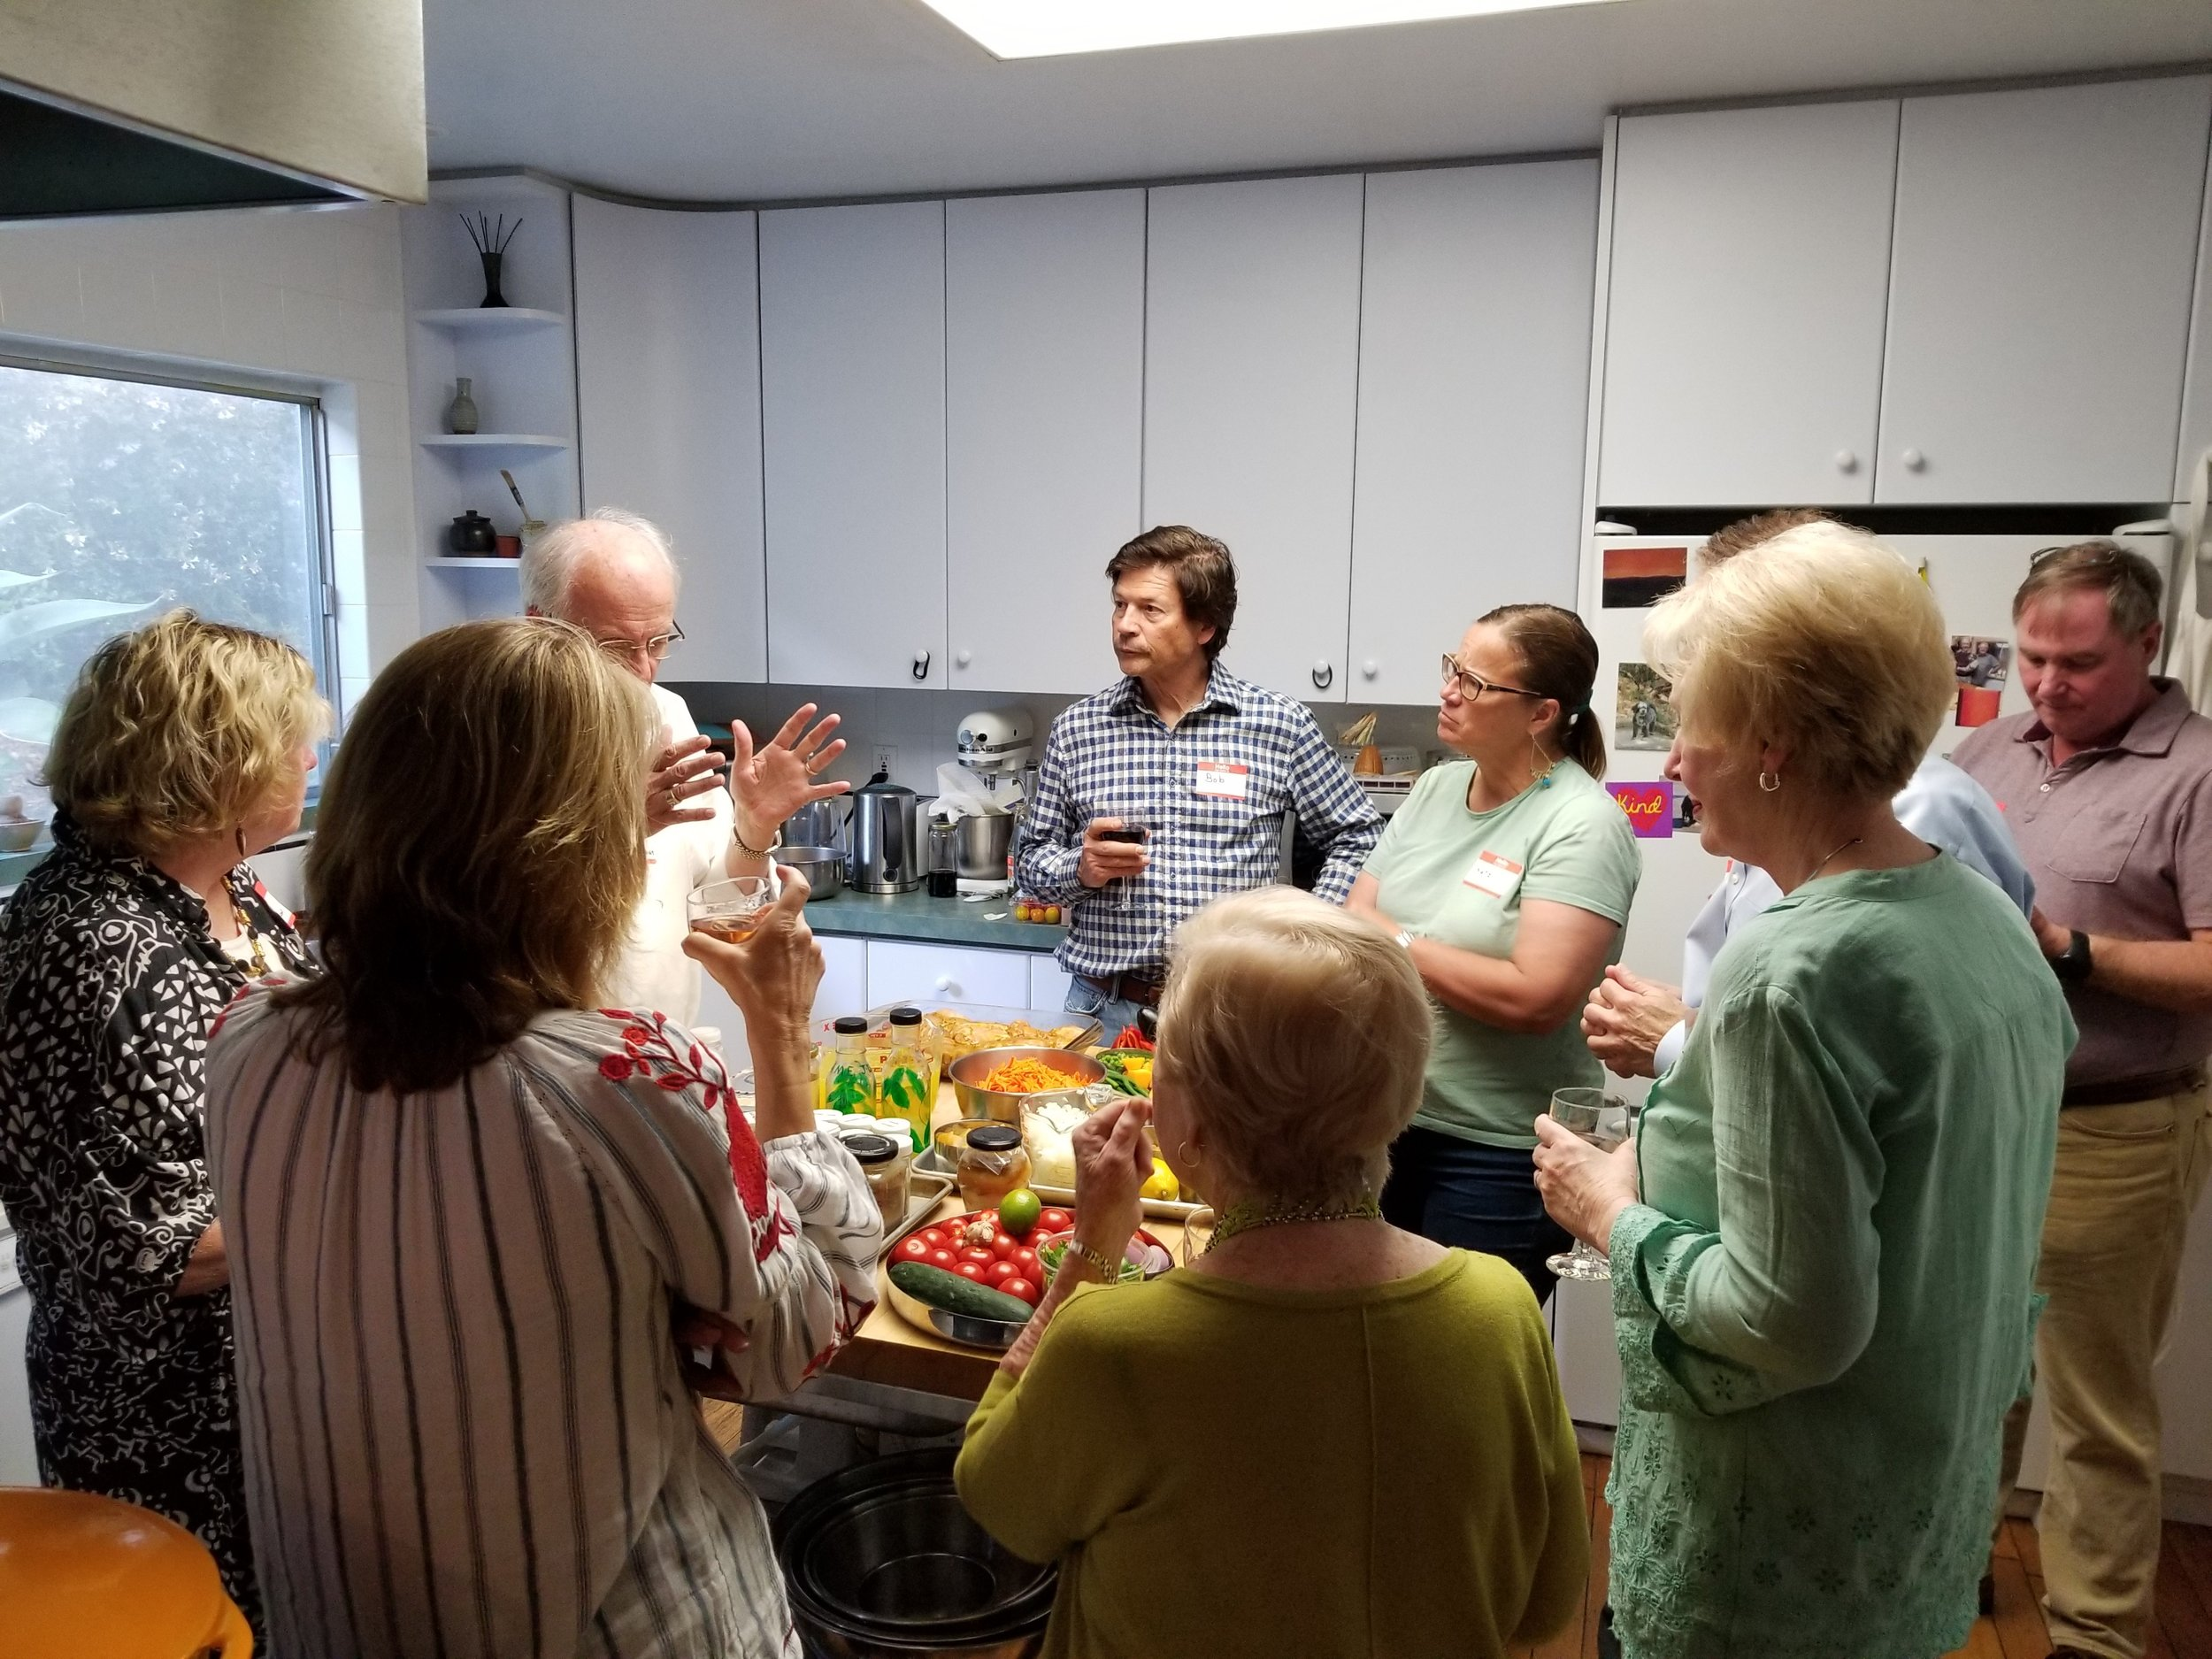 FUNDRAISER:Moroccan & Indian Cooking Class & Dinner - SATURDAY, JULY 20, 20196:00-10:00pm@ A private residence in Santa BarbaraSBPCA member Reid Melton (RPCV India) shared his culinary skills while teaching participants how to cook a number of wonderful Indian and Moroccan dishes, sharing interesting tidbits of information along the way. The evening culminated with an absolutely delicious sit-down group dinner.After expanding our cooking skills, tantalizing our taste buds over a great meal, socializing and making new friends, everyone went home with happy bellies, new insights into Indian and Moroccan cuisine, recipes to replicate what we learned to make, and little gifts.Our huge appreciation goes to hosts Reid and Peter, and to those who came out to support SBPCA in this incredibly delicious and fun way!All proceeds went to benefit Santa Barbara Peace Corps Association's mission and Mini Grants program!Click here to view the evening's menuClick here for a 2004 News-Press Food Section feature article on Reid Melton and his cooking